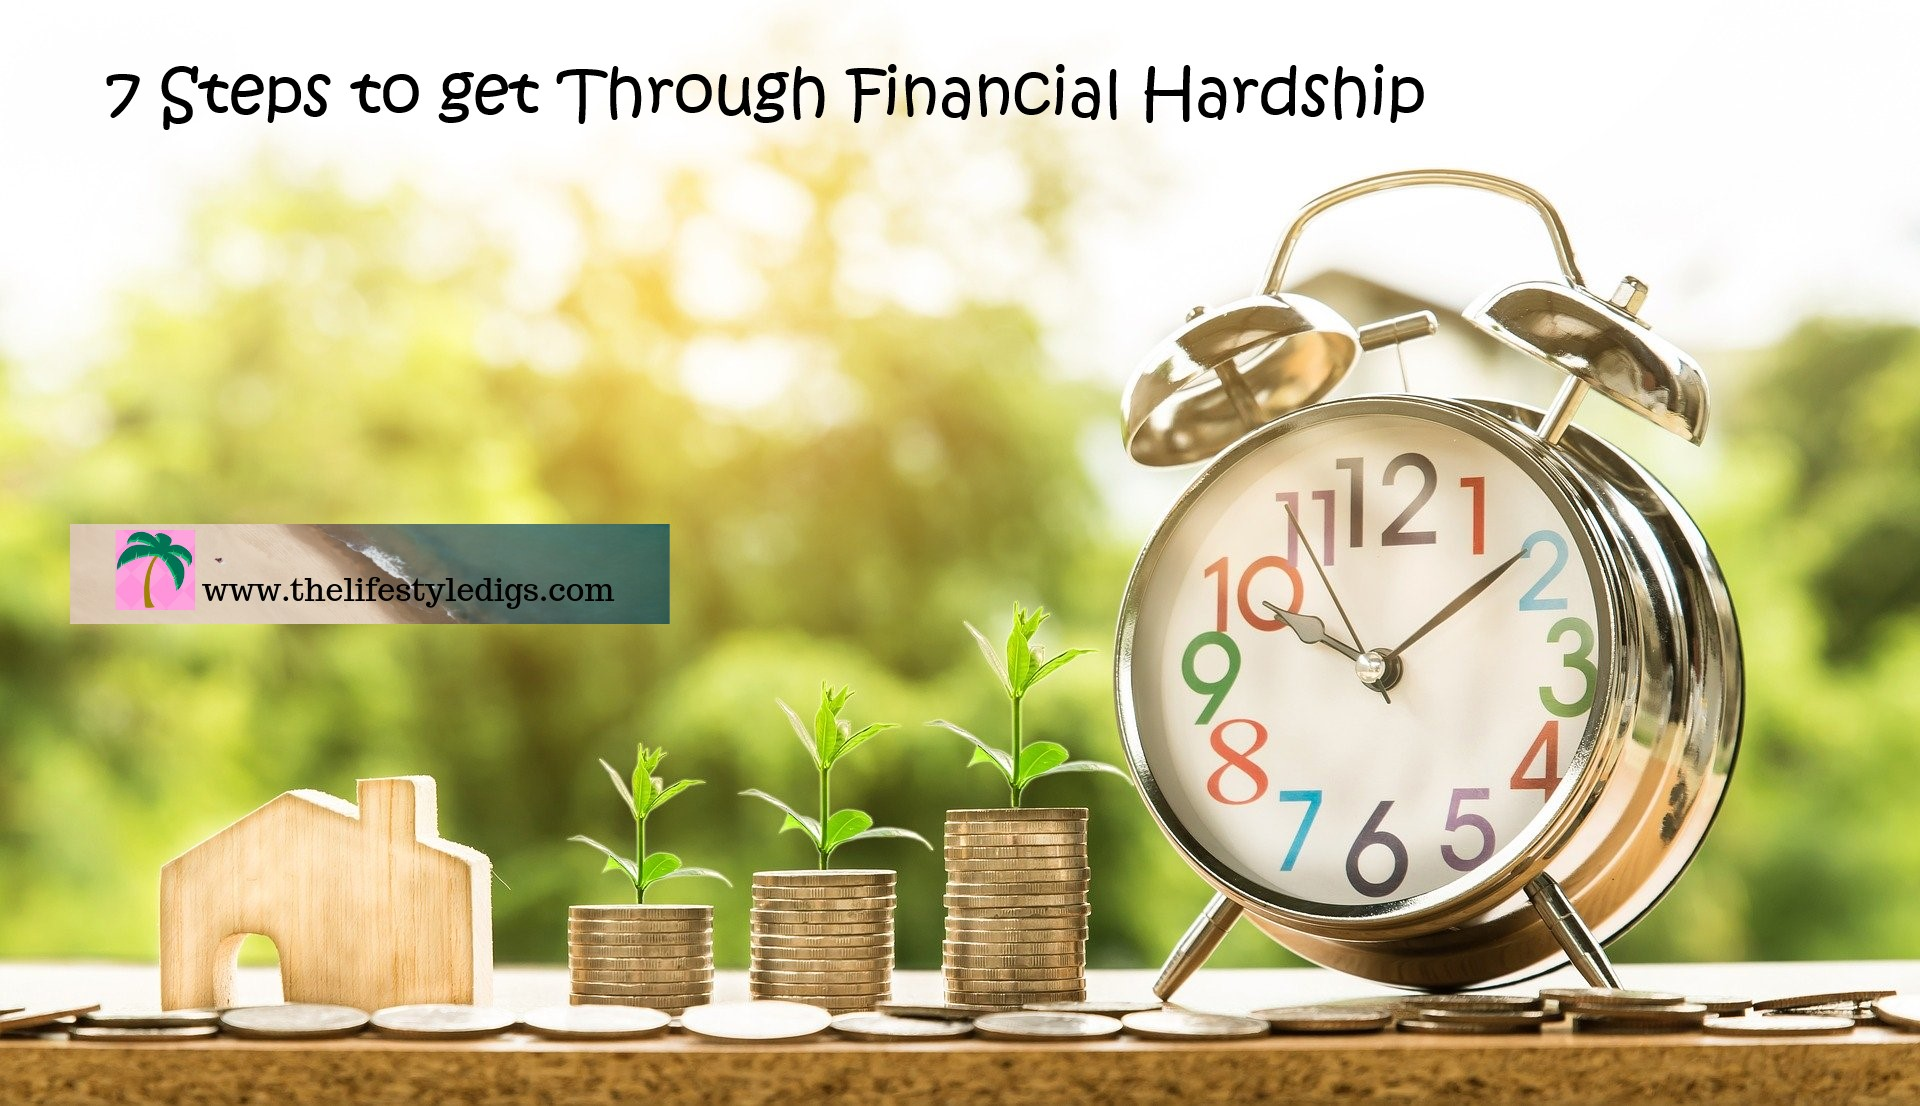 7 Steps to get Through Financial Hardship